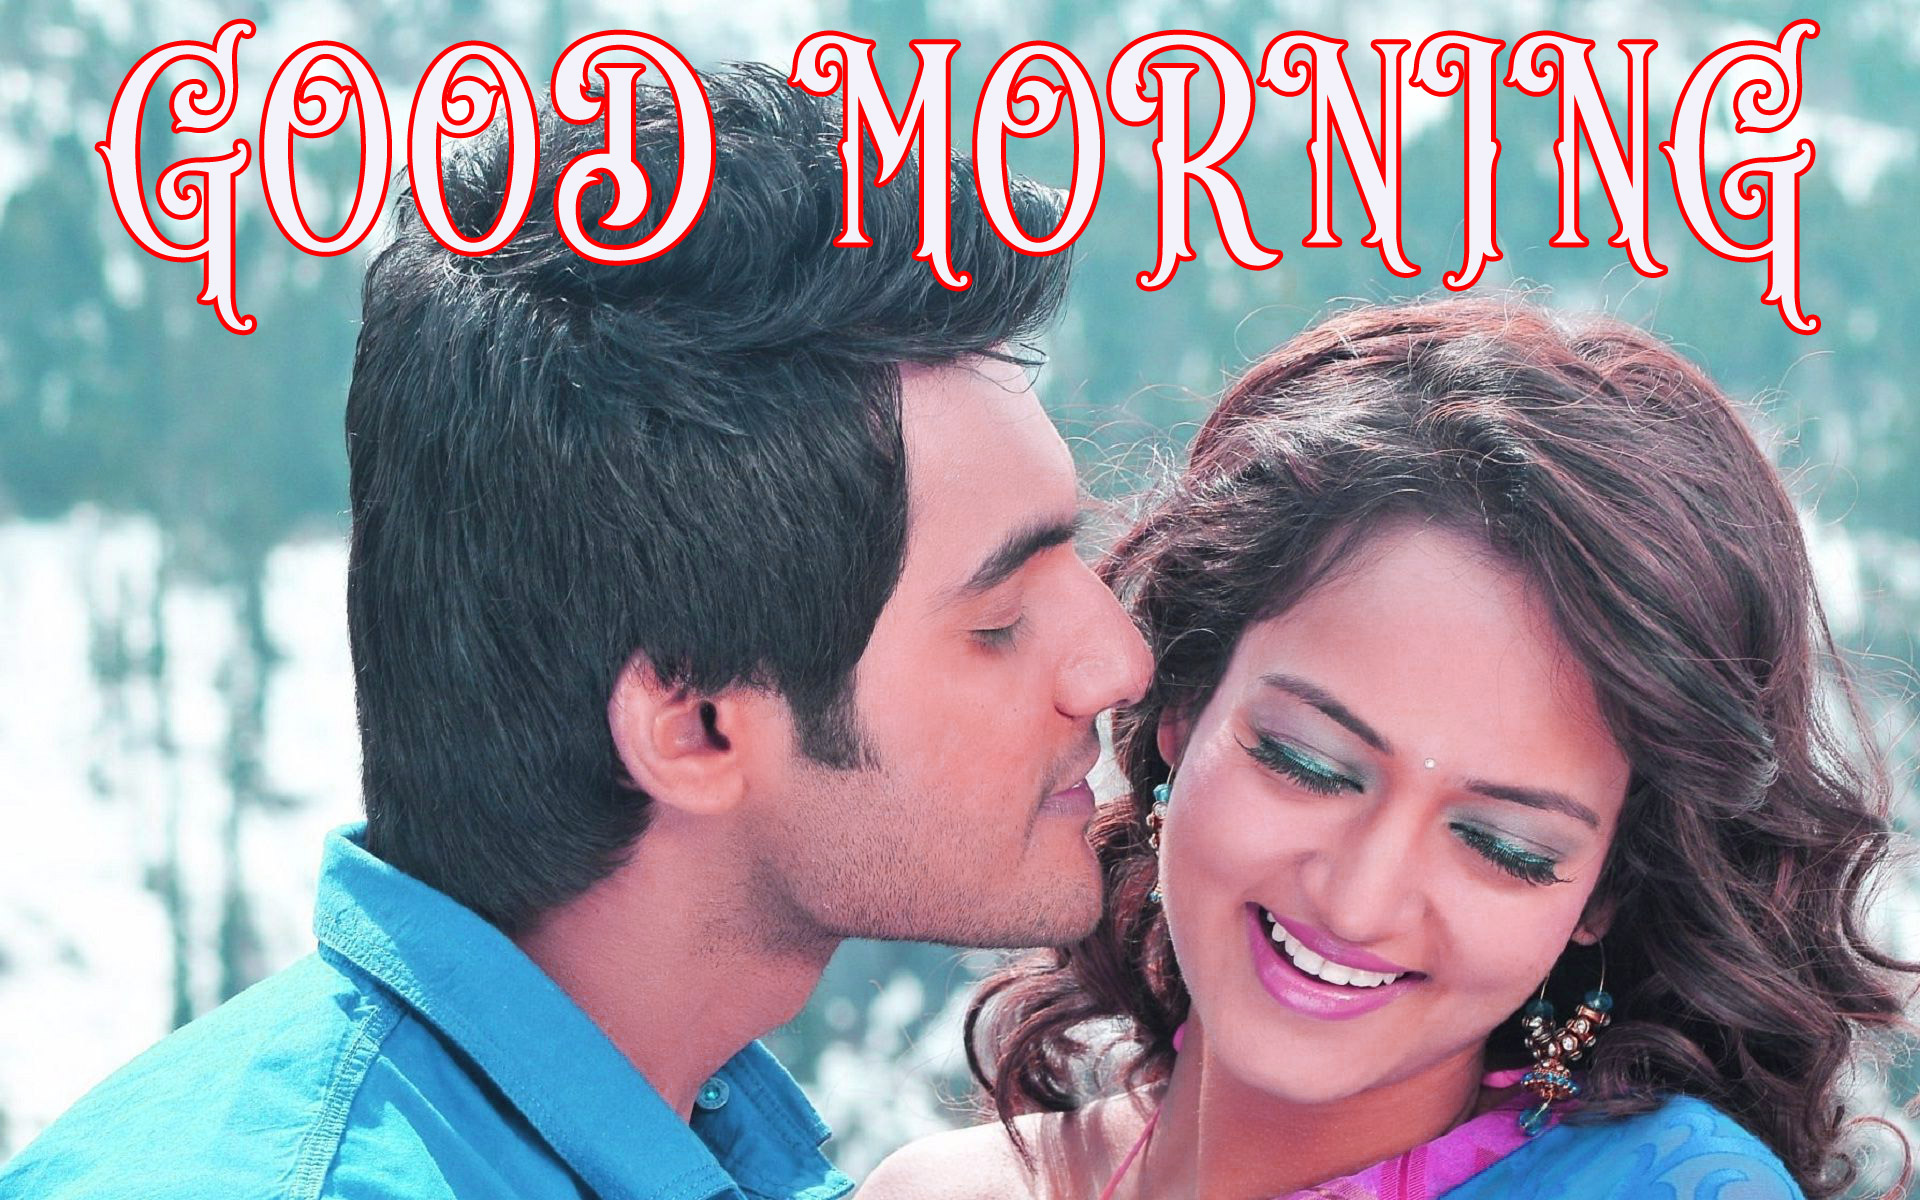 Good Morning Images Wallpaper Pictures For bf & Gf - 122+ गुड मॉर्निंग